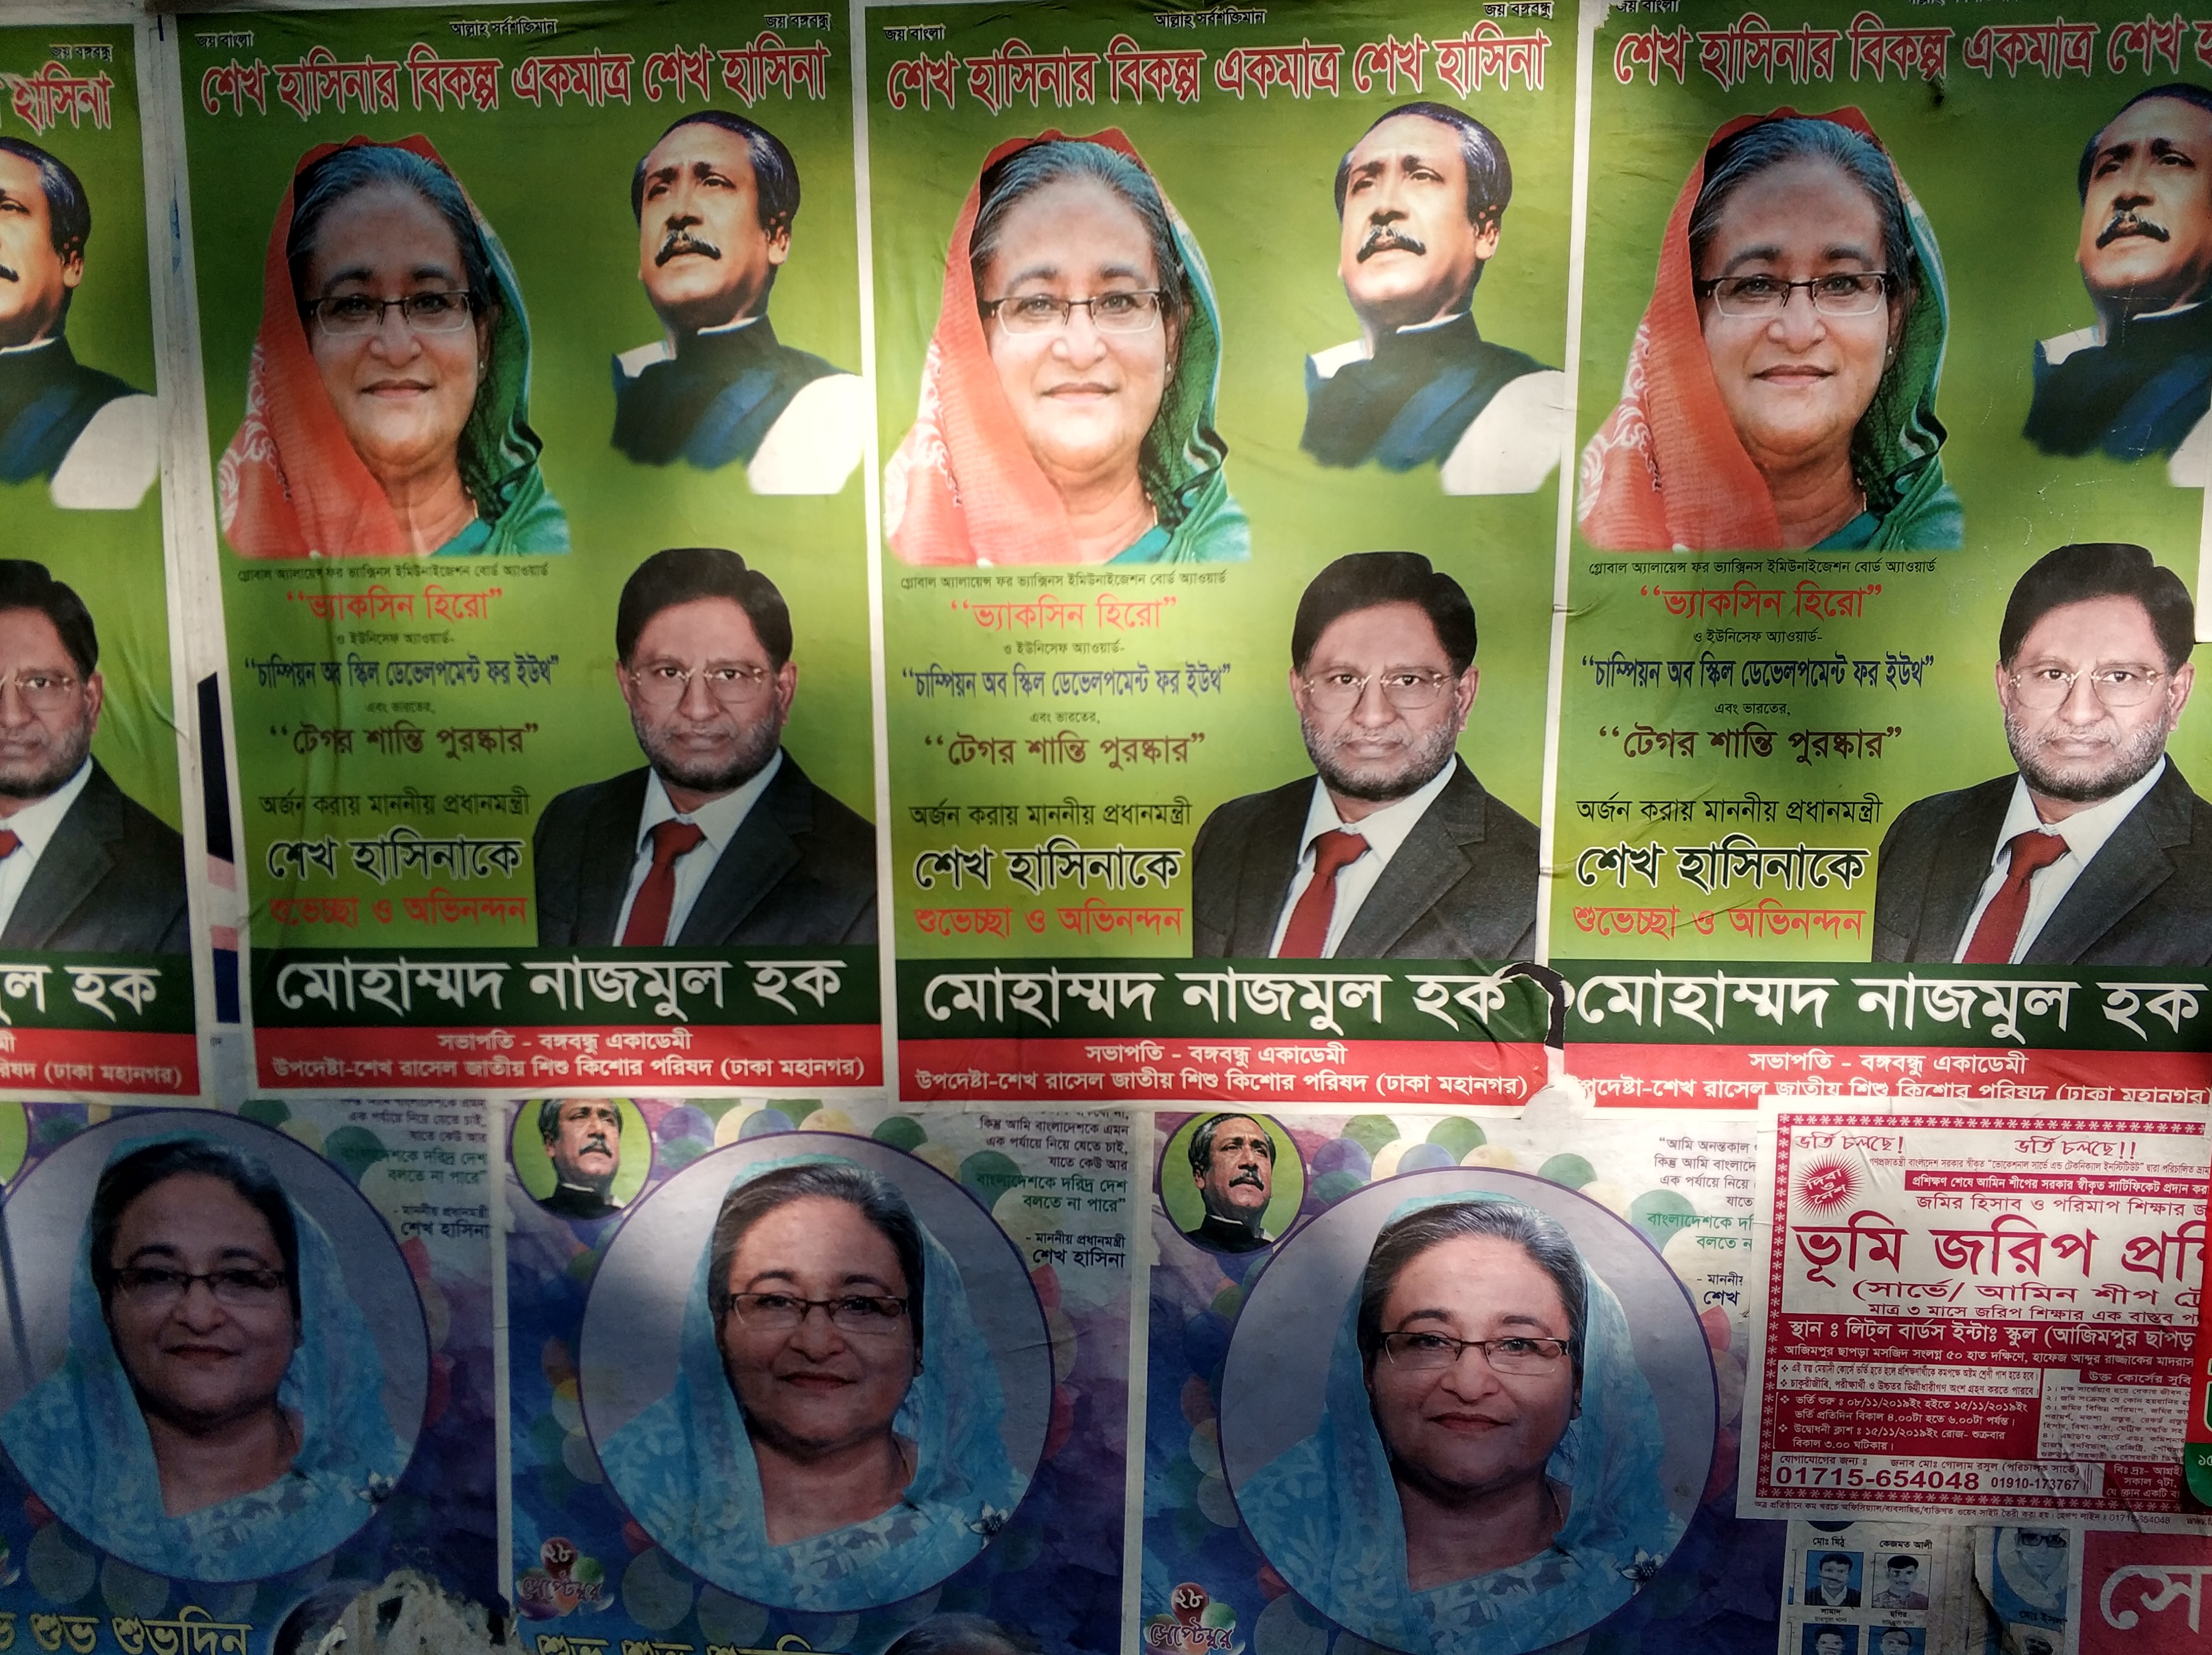 Prime Minister Sheikh Hasina on colorful political posters in Dhaka